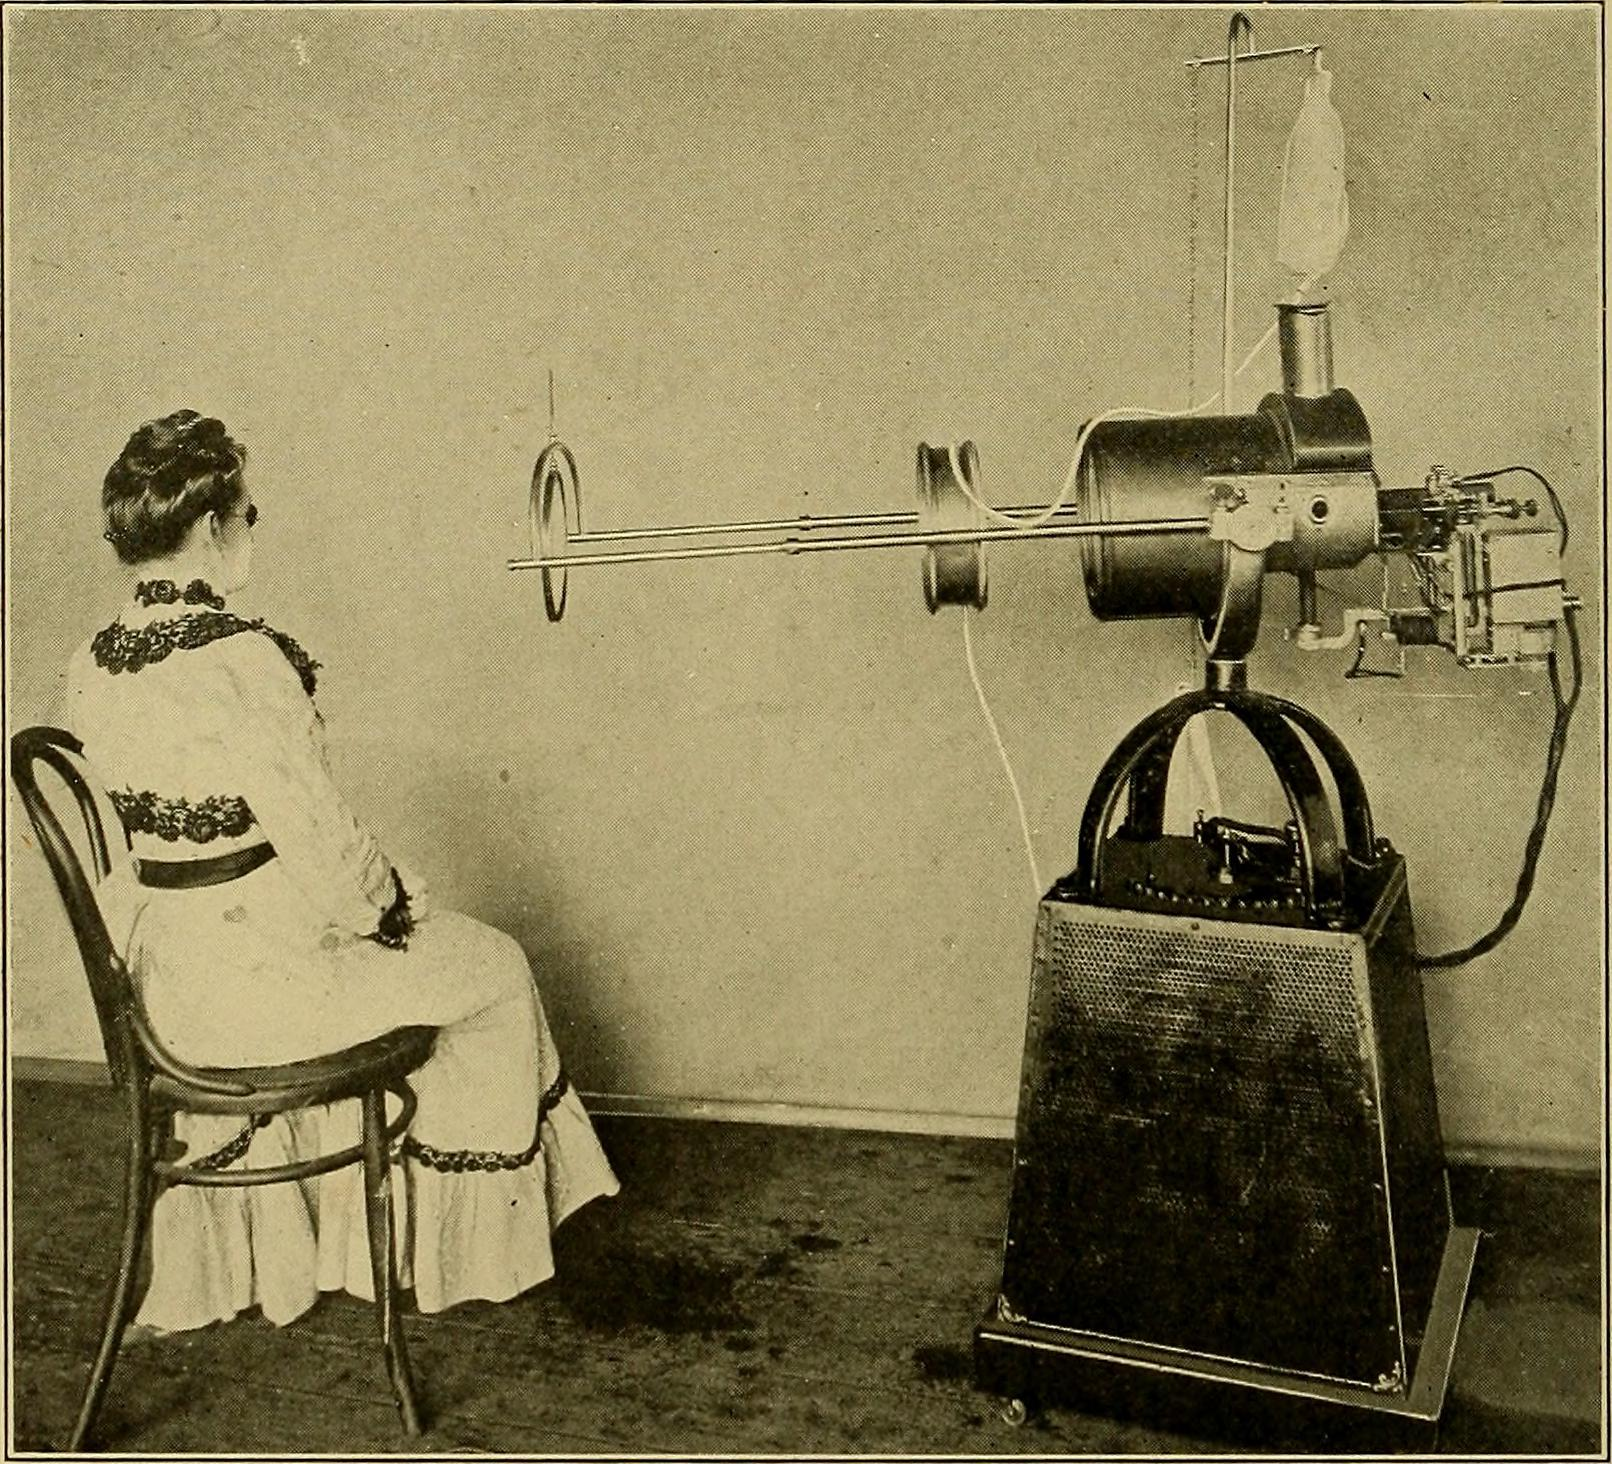 Old timey pain management?